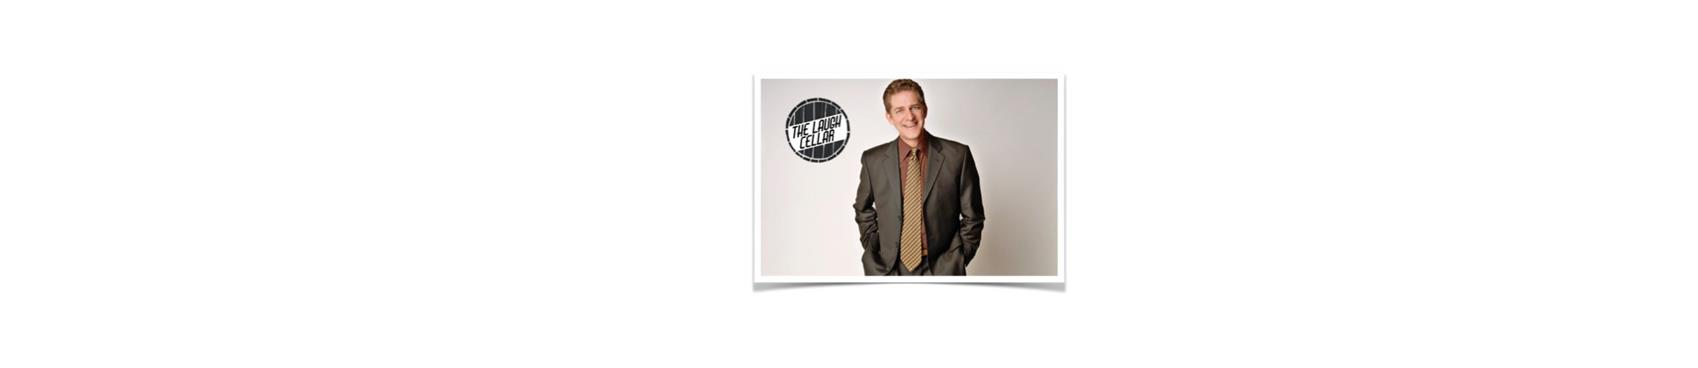 Purchase Tickets to Comedian Steve Bruner & Guests! at The Laugh Cellar on CellarPass